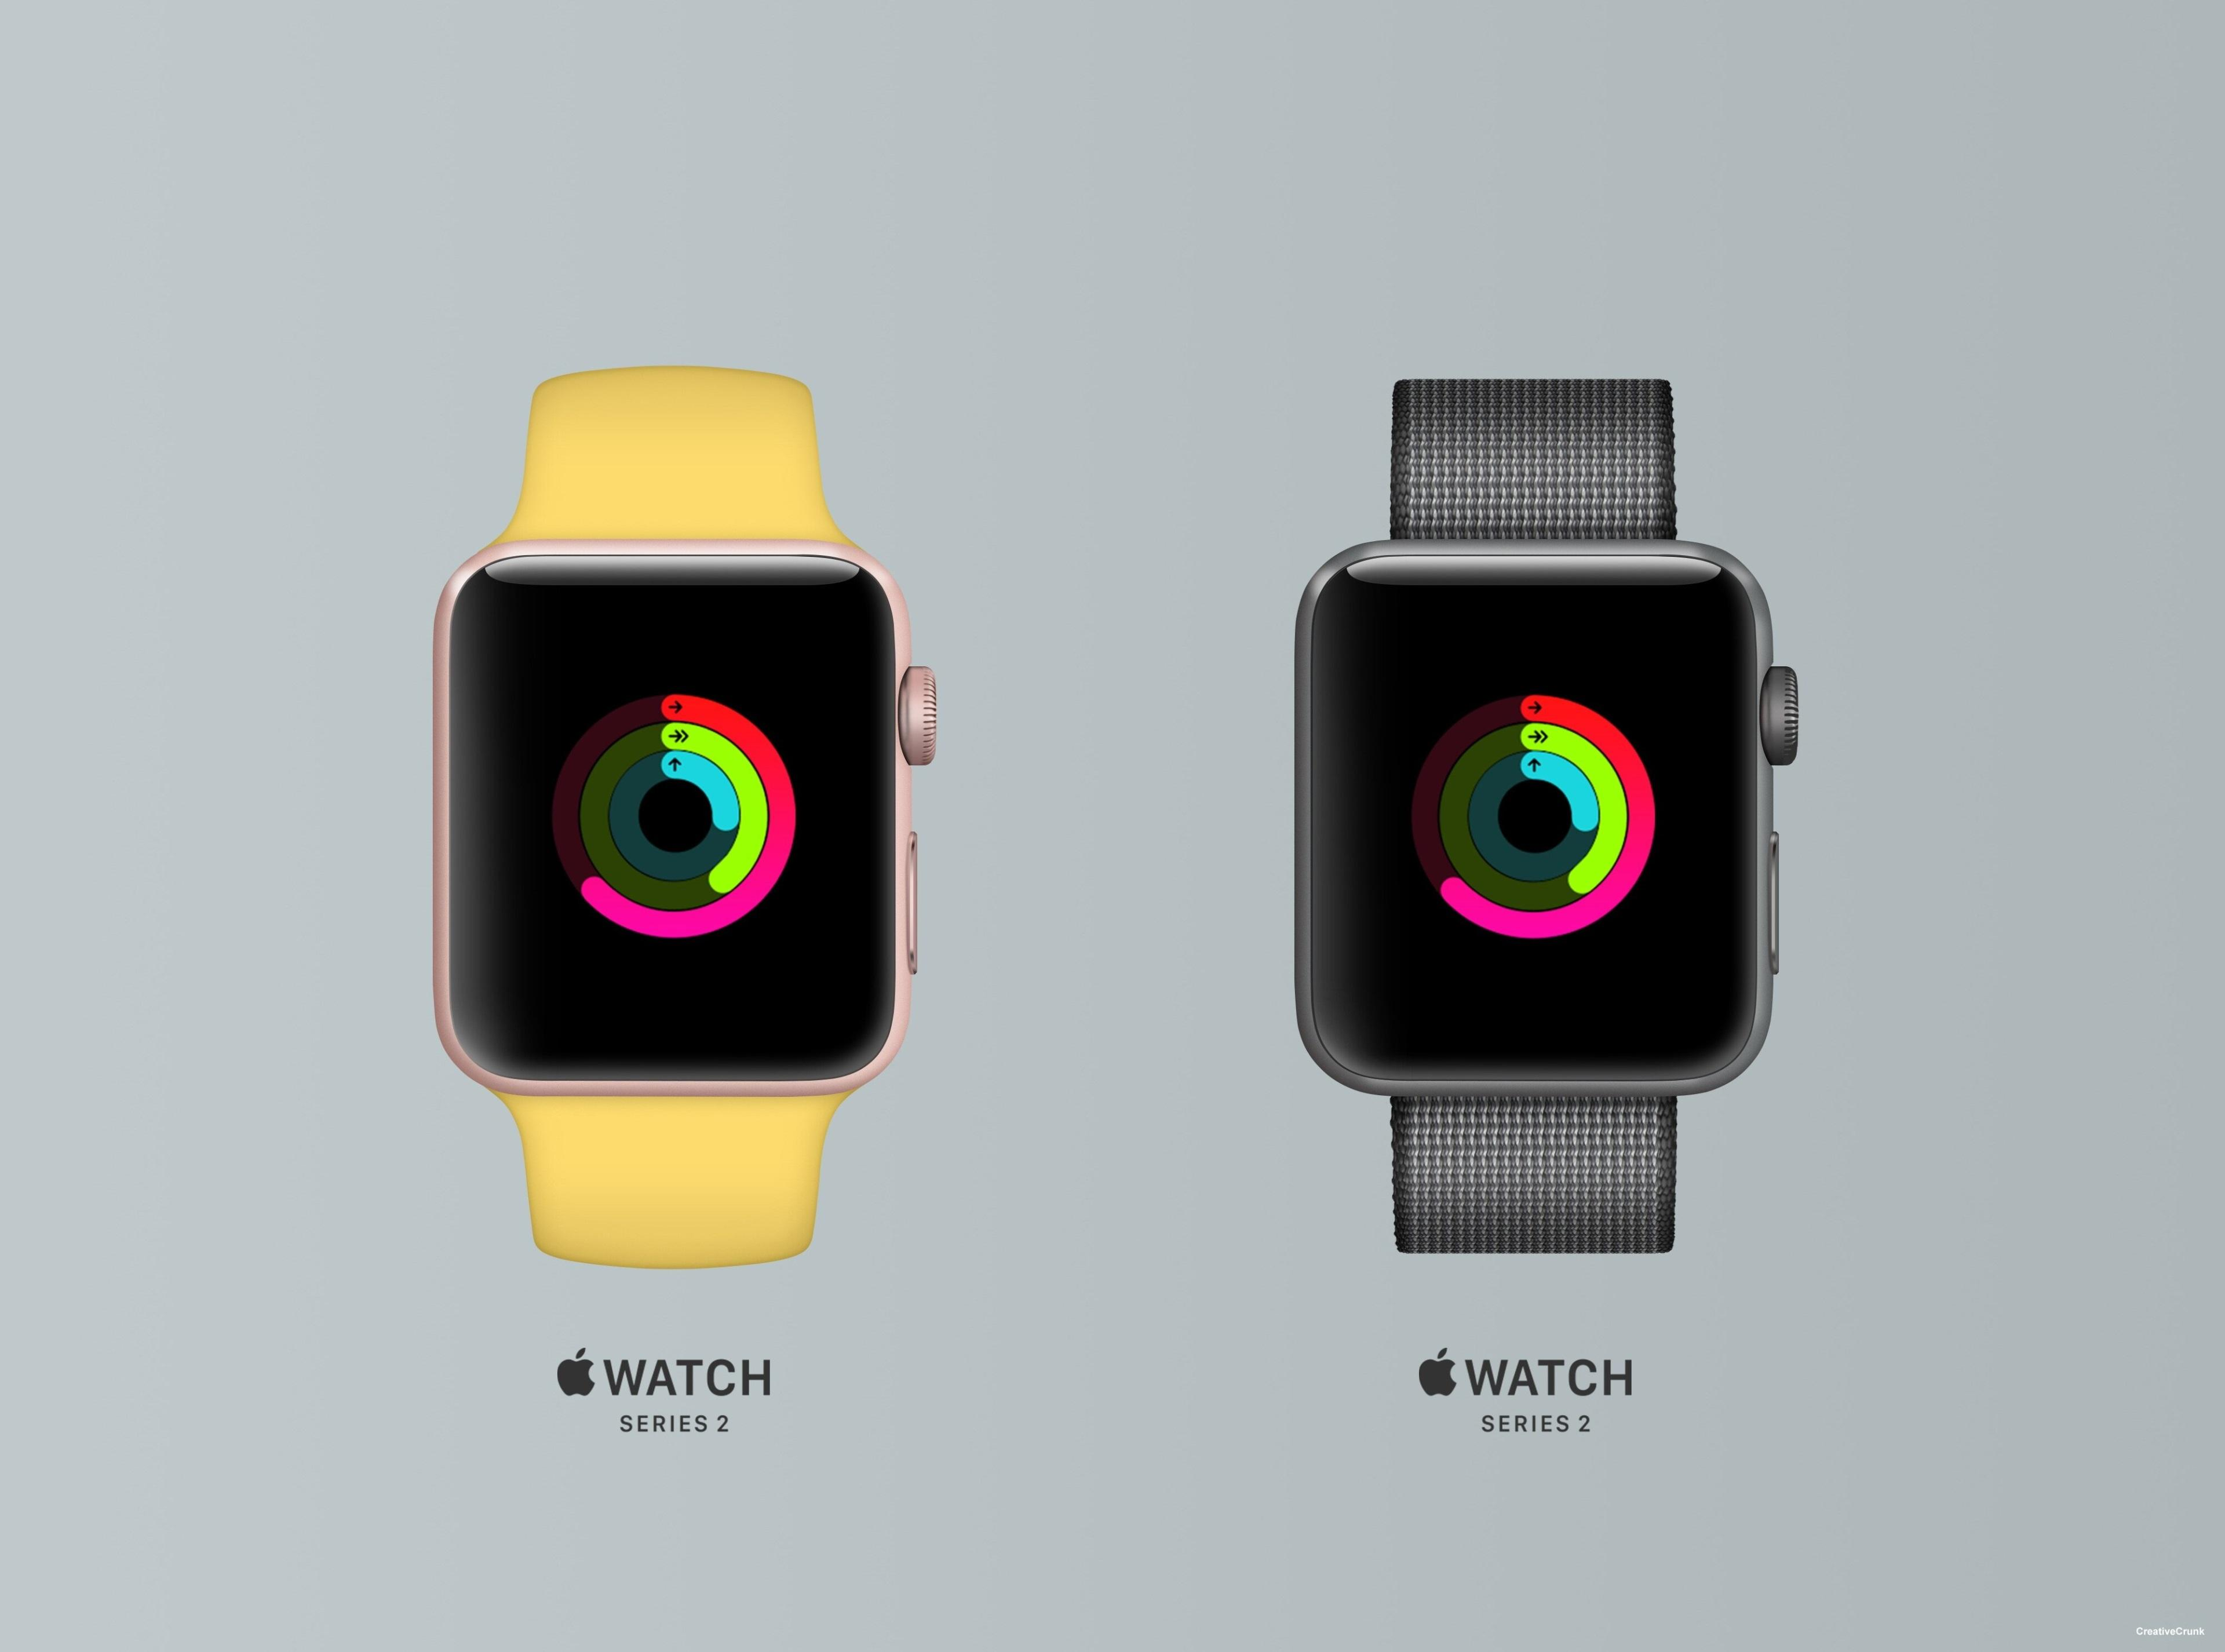 2636468 3840x2851 apple watch series 2 4k hd high wallpapers